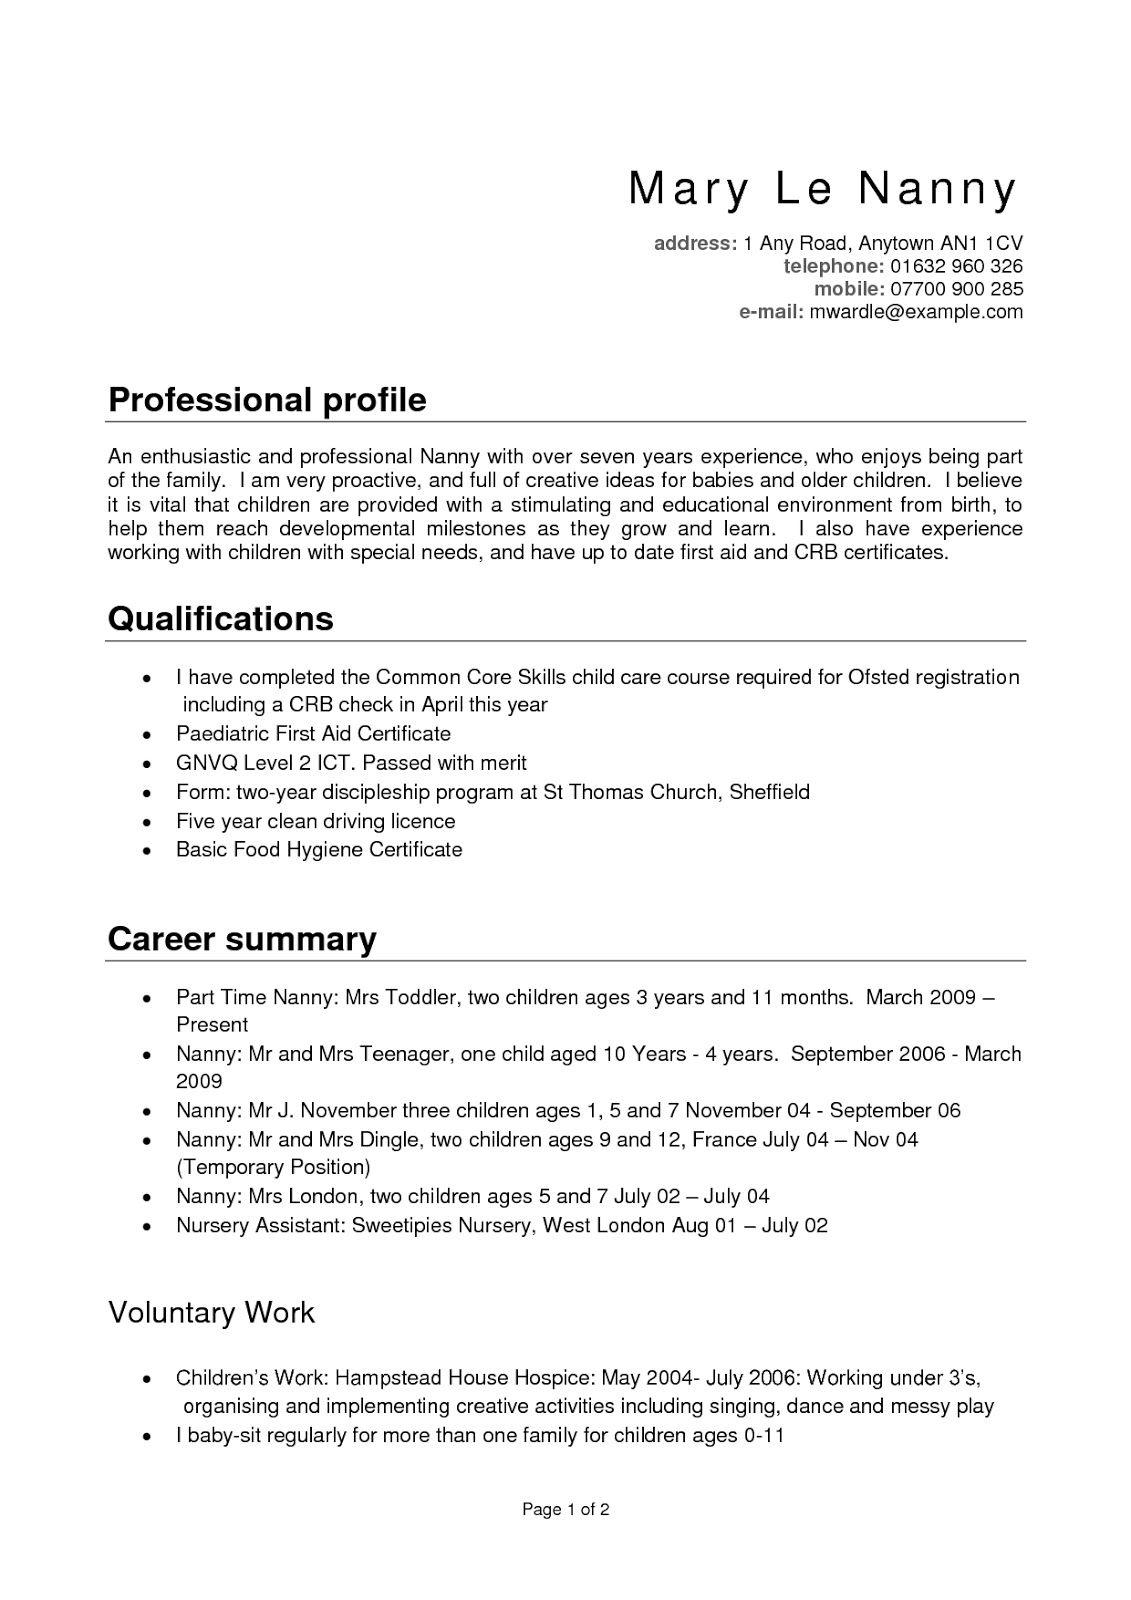 nanny resume templates free template re profile examples job duties for medical lab Resume Nanny Job Duties For Resume